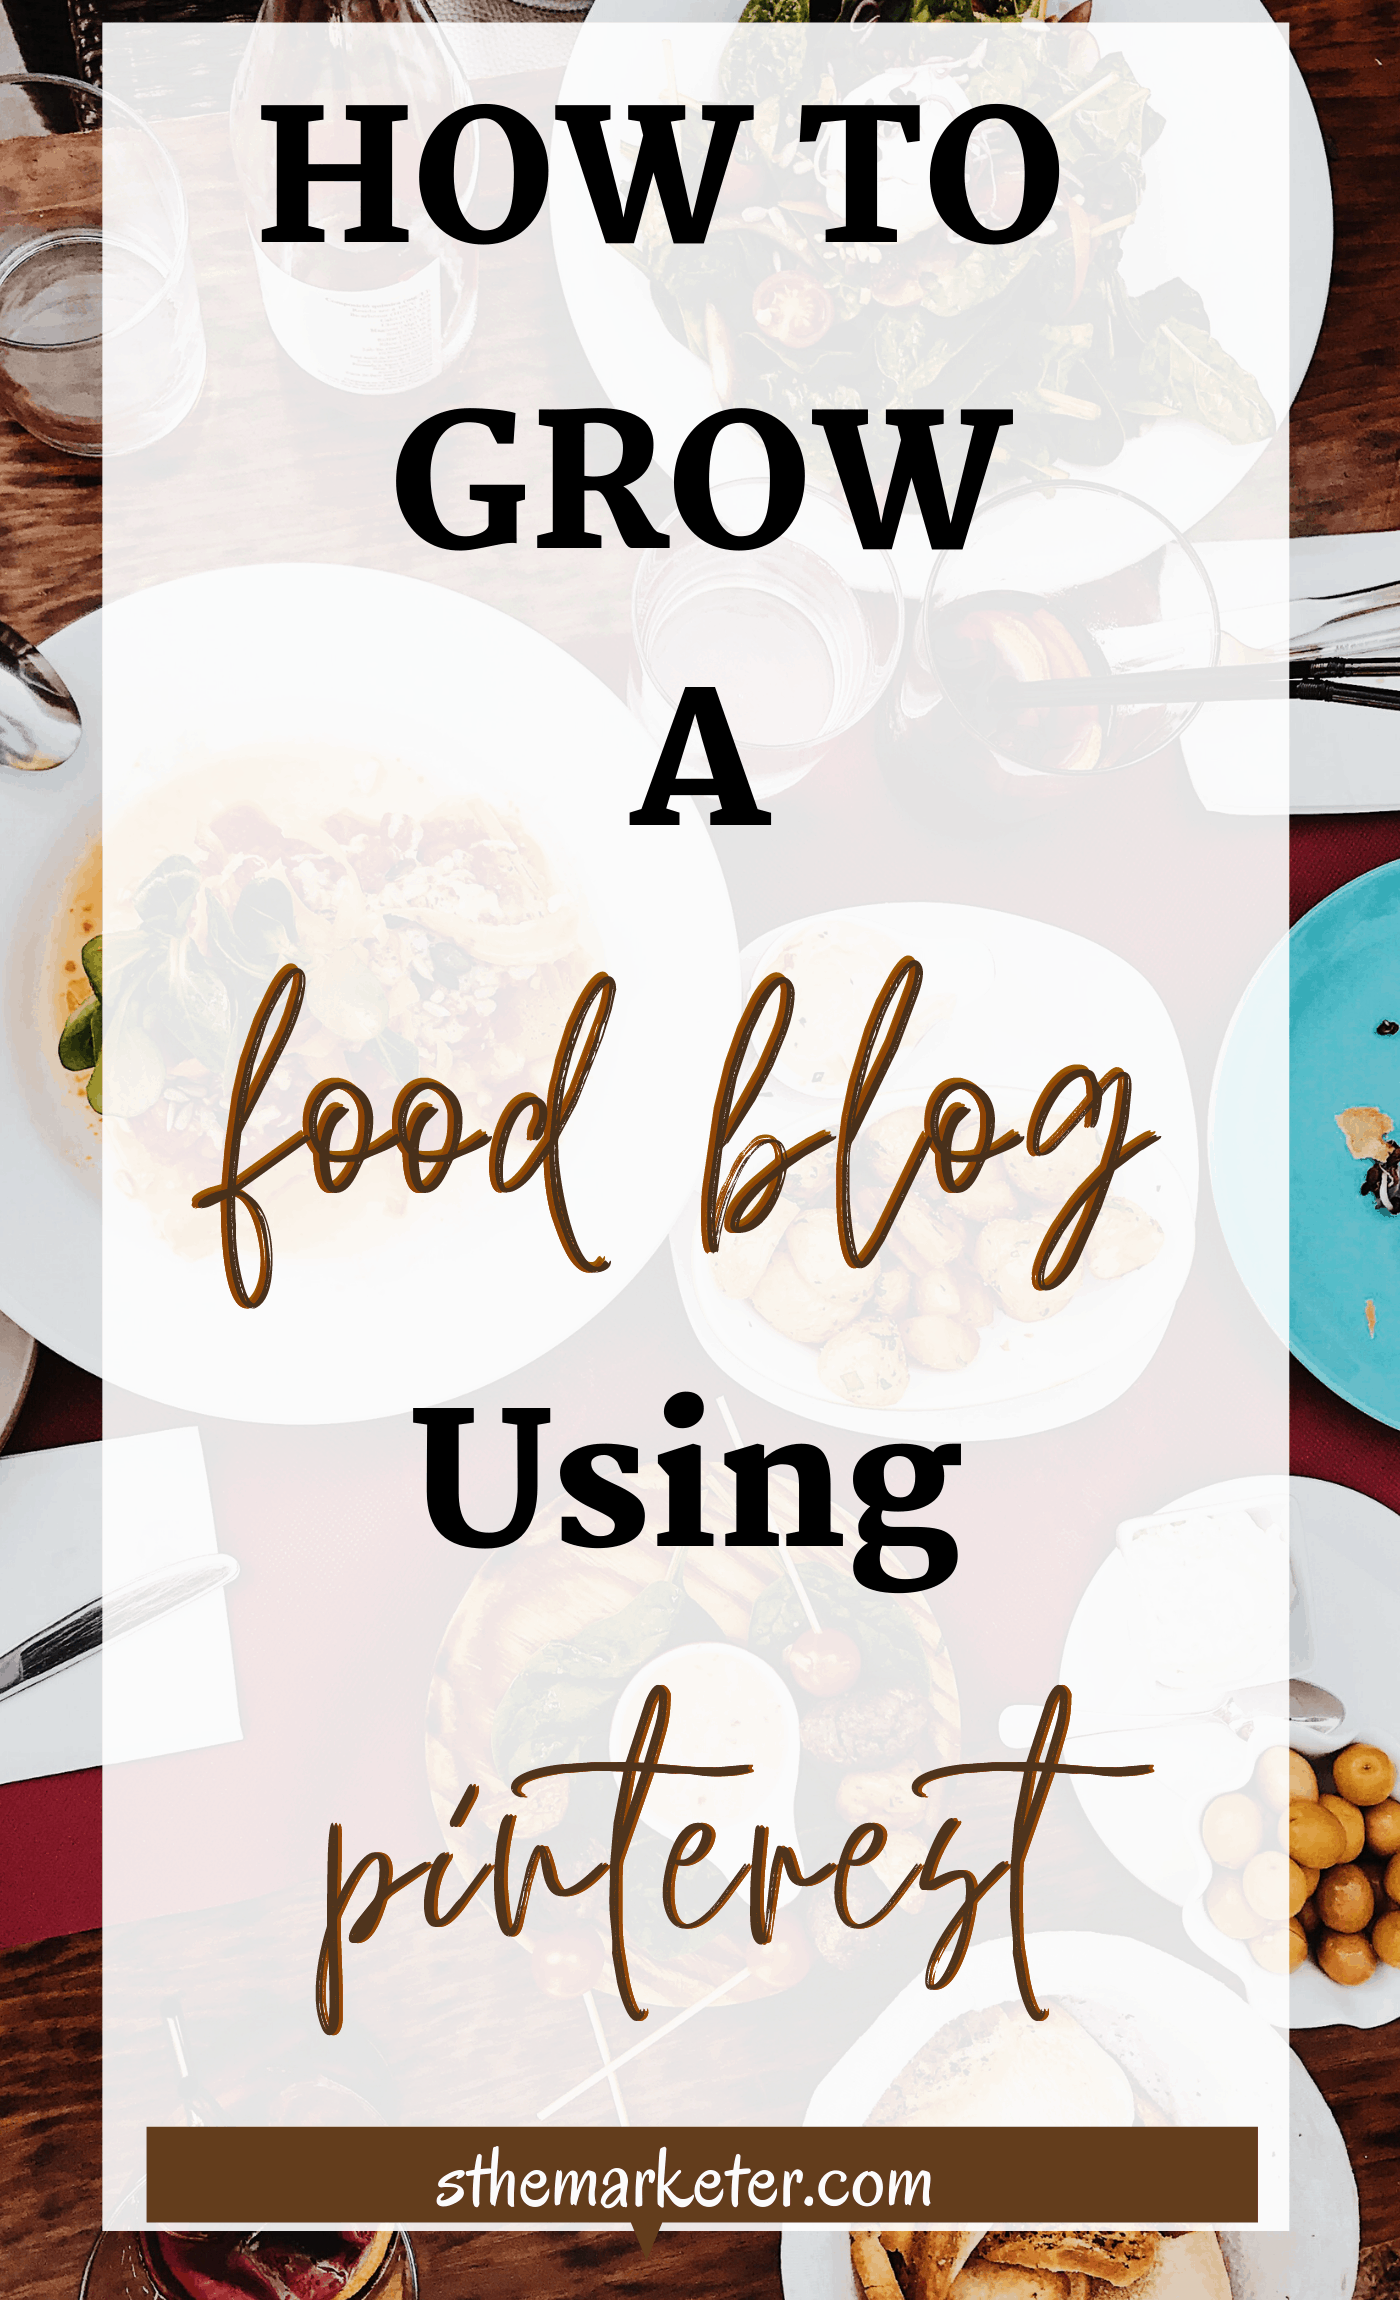 How to Grow a Food Blog Using Pinterest: Marketing Tips & Strategies